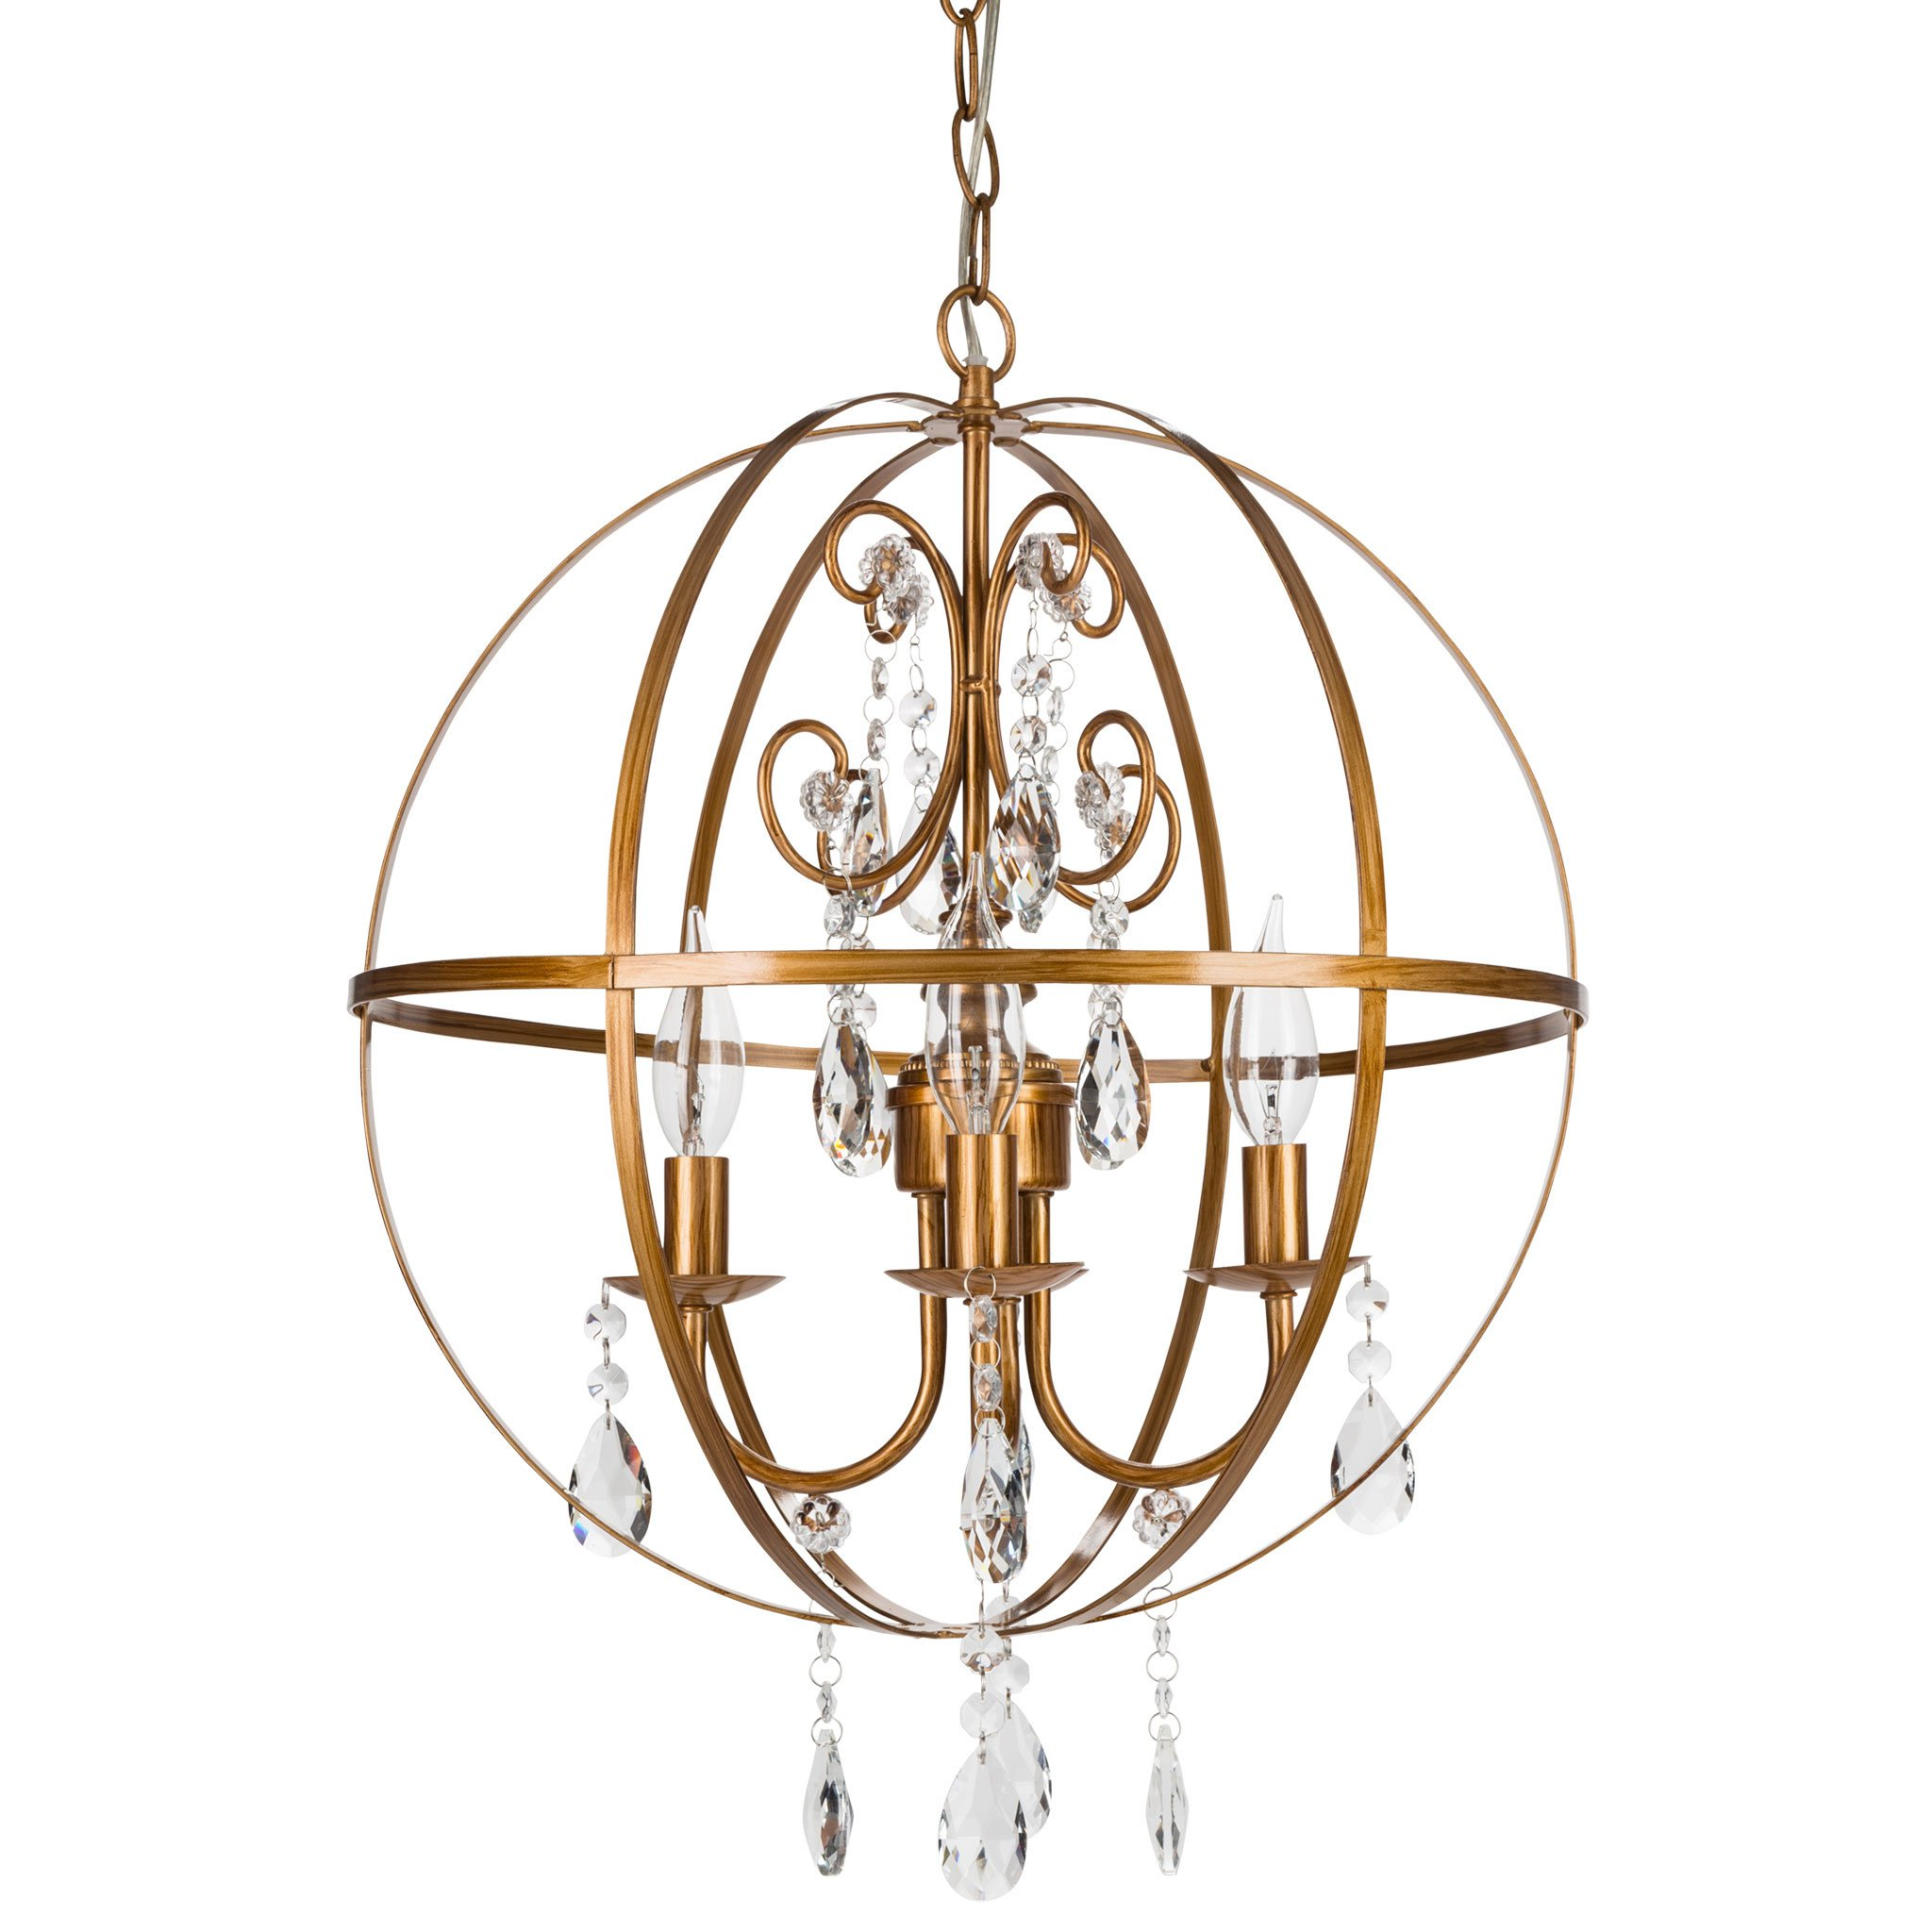 Amalfi Decor 4 Light Contemporary Crystal Orb Plug-In Chandelier (Gold) | Wrought Iron Frame with Glass Crystals by